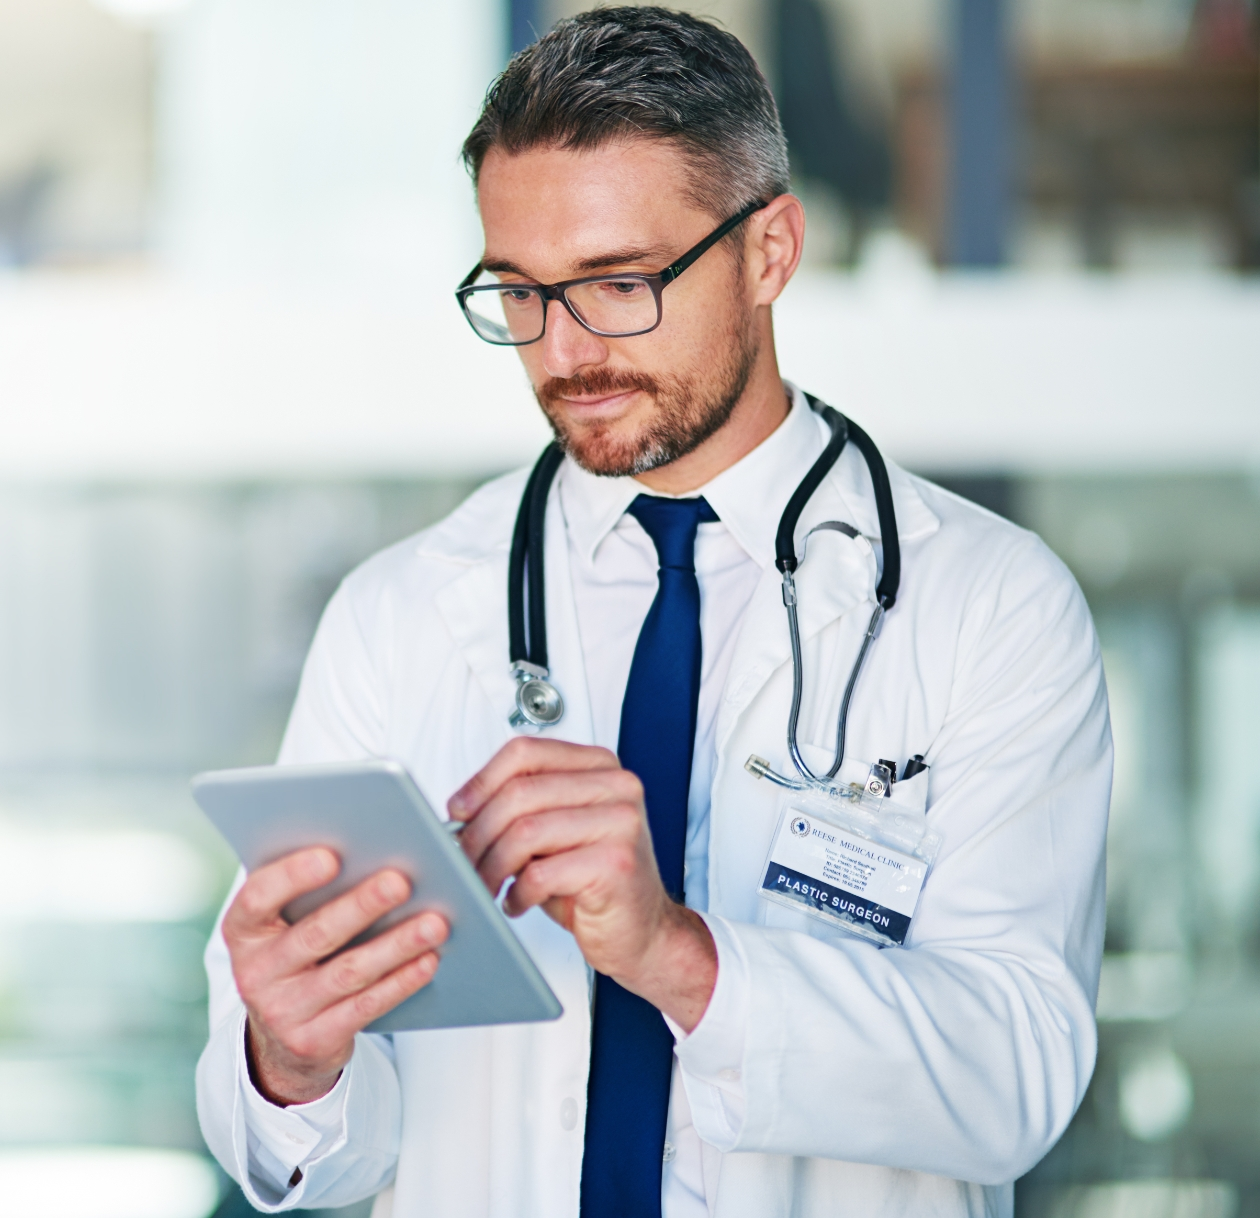 MACRA's Final Rule: A Breakdown of Changes and their Implications